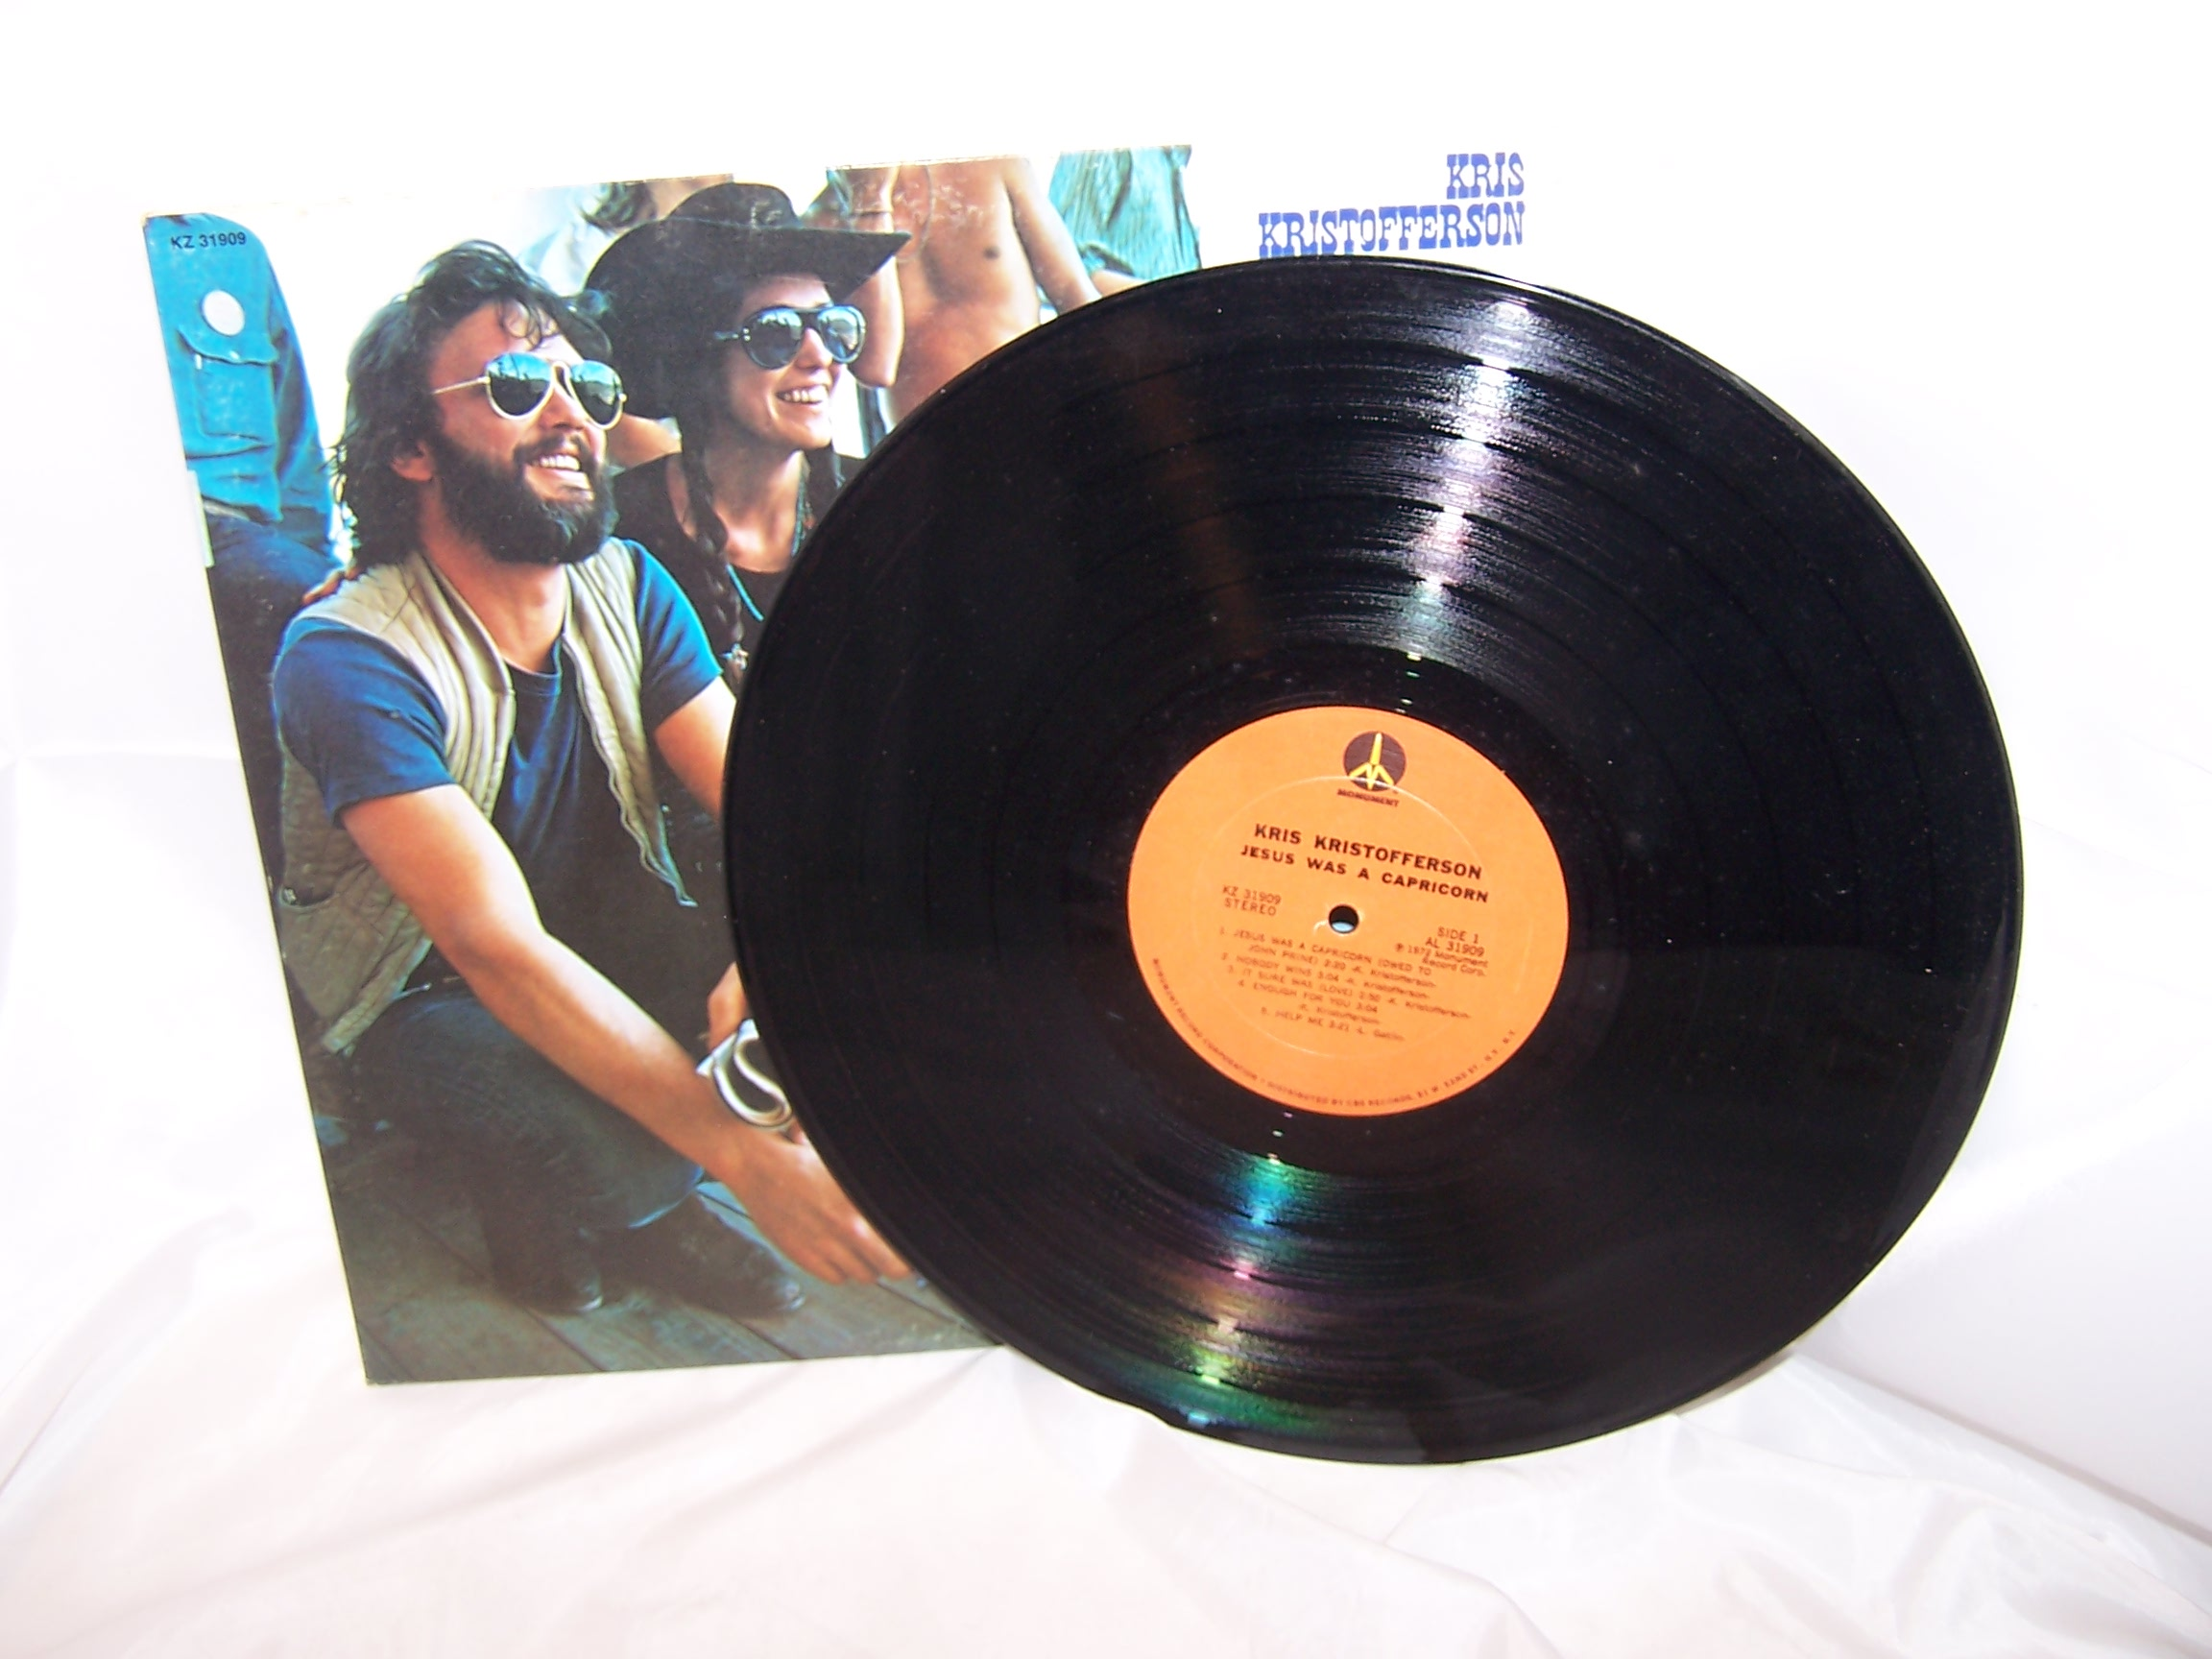 Image 3 of Jesus Was A Capricorn, Kris Kristofferson Record, Monument Columbia